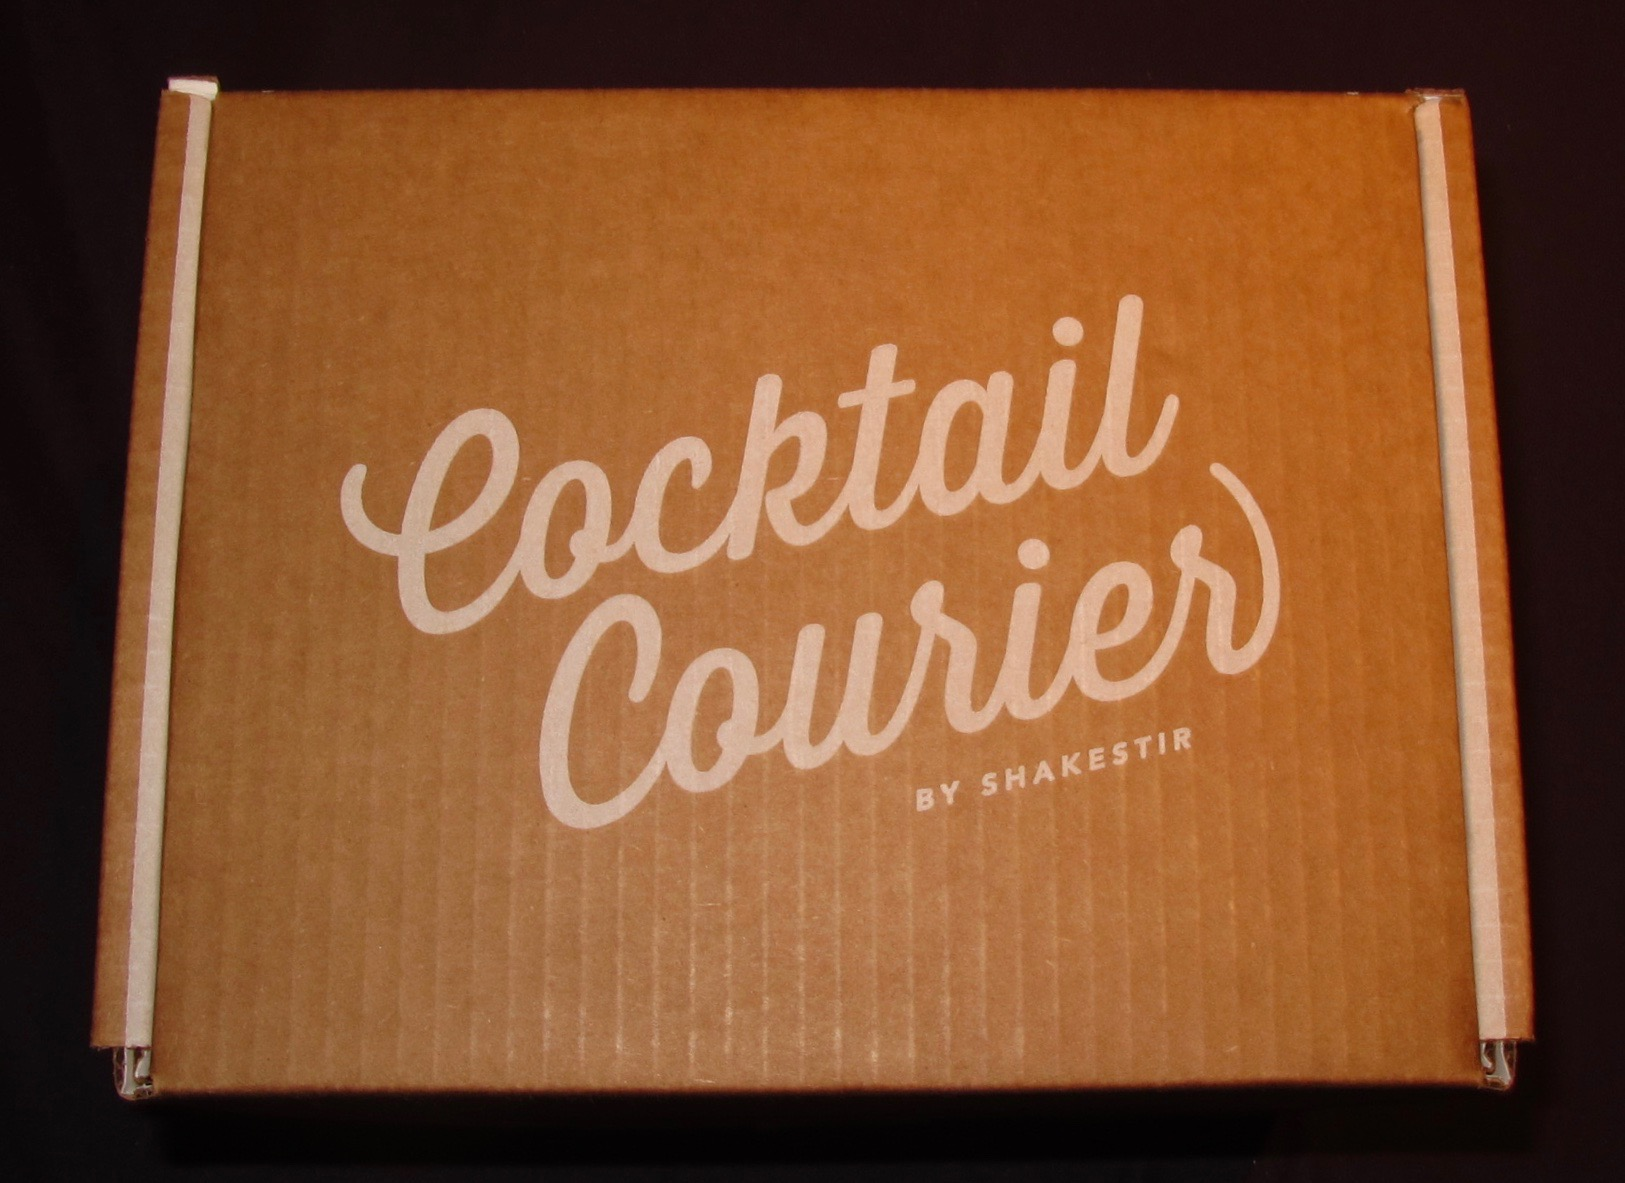 cocktailcourierbox